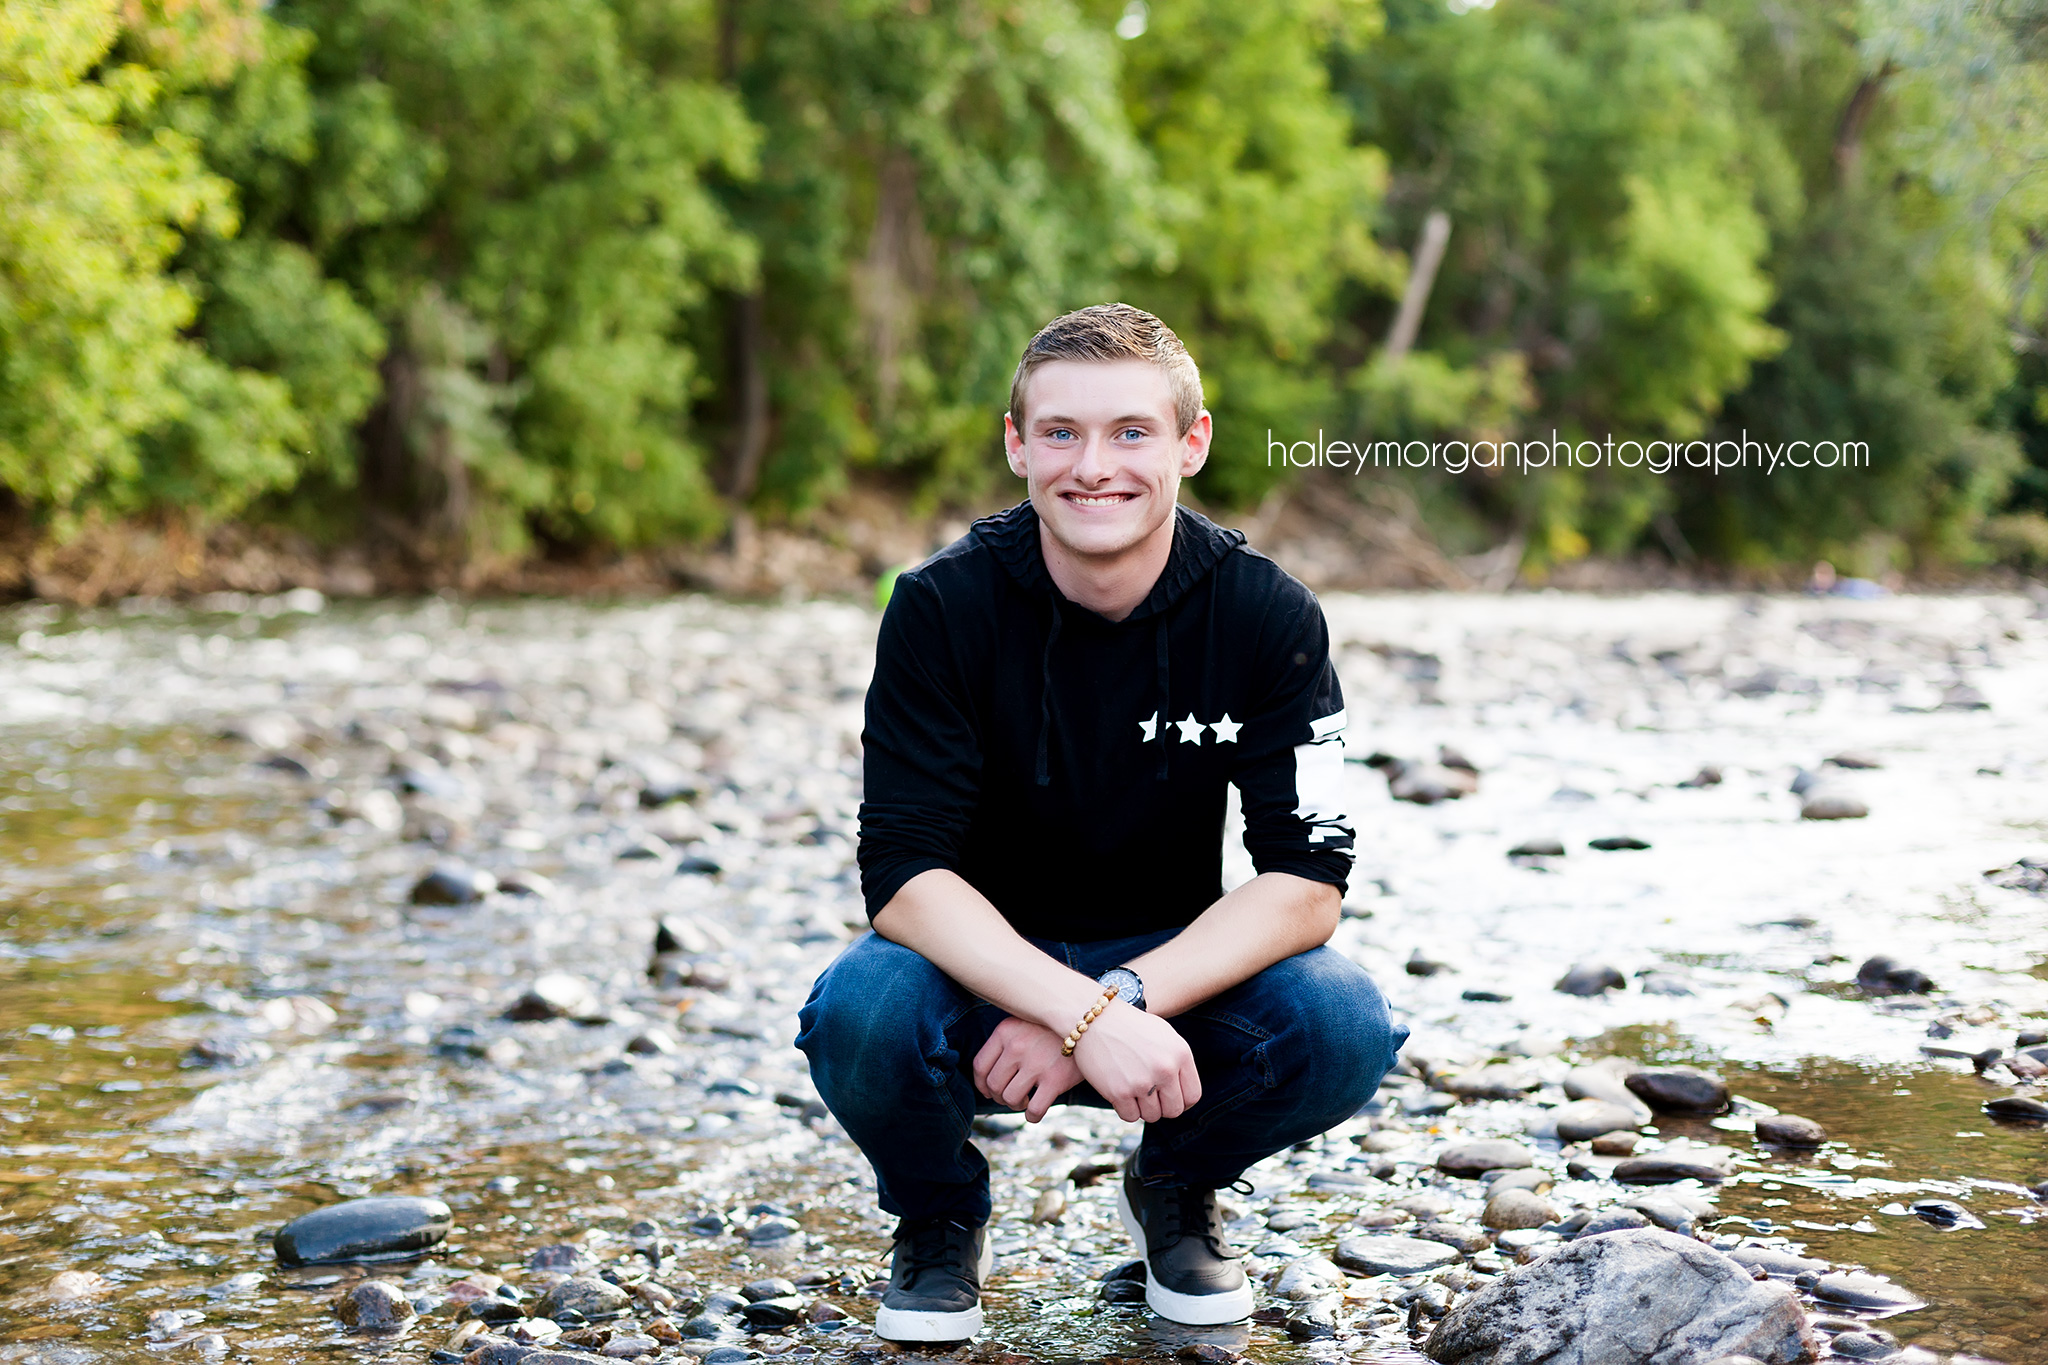 Golden Senior Photographer, Golden Photographer, Clear Creek Trail, Clear Creek Park, Clear Creek Photography, Clear Creek Park Senior Photos, Clear Creek Trail Senior Photographer, Senior Photoshoot Mustang, Denver Senior Photographer, Denver Senior Photography, Haley Morgan Photography